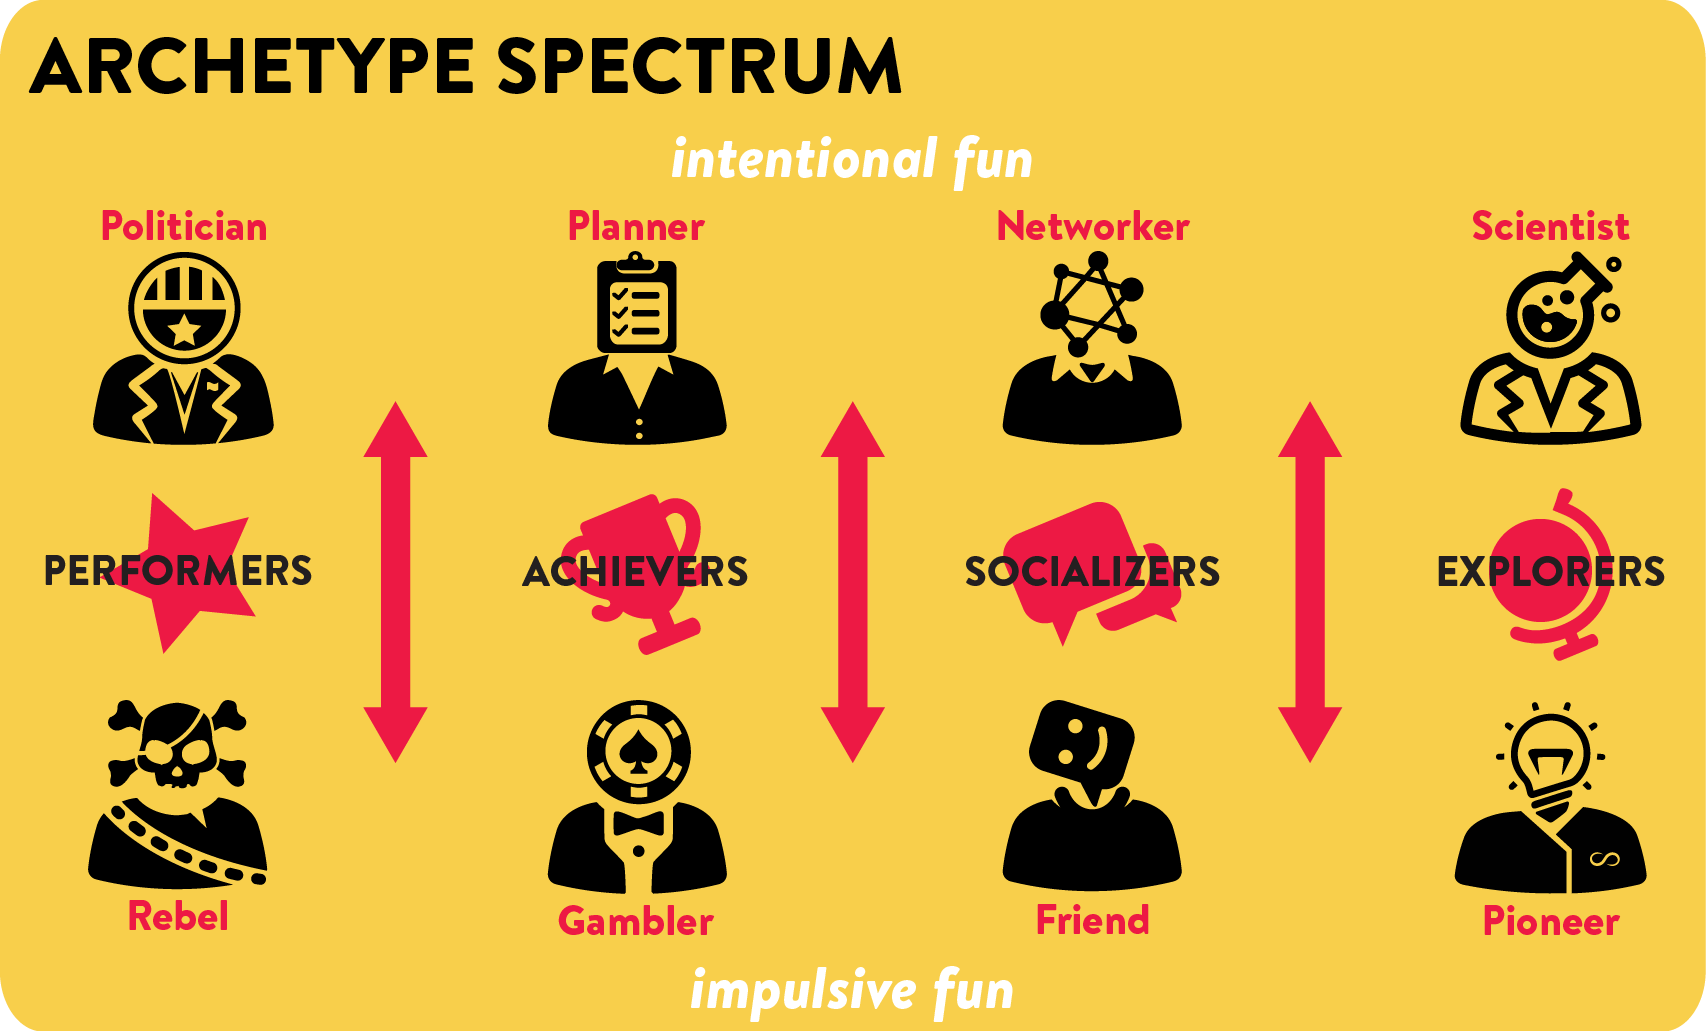 Archetype Spectrum: intentional vs. impulsive